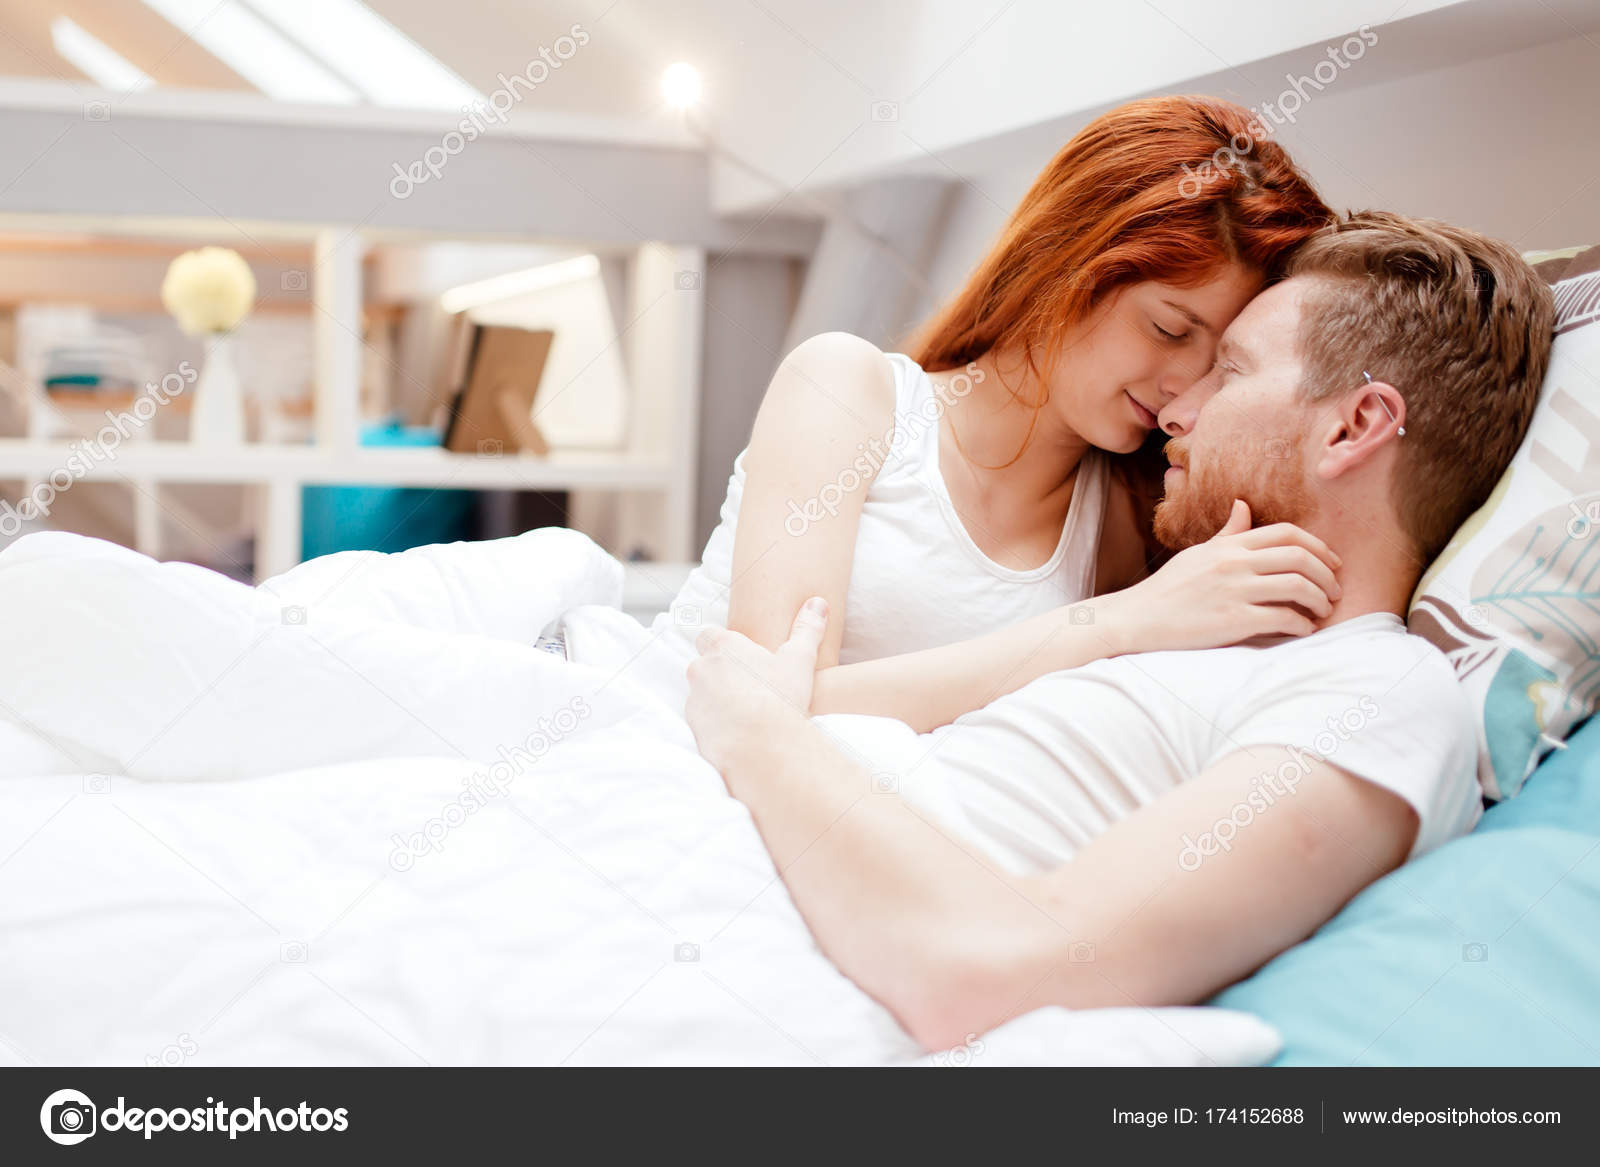 Romantic pictures of in bed for Love bedroom photo